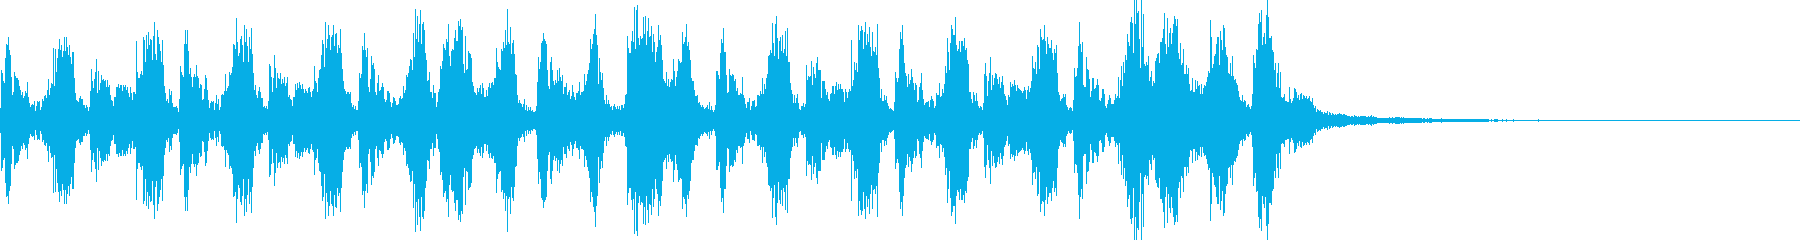 Comical accordion jingle running in a hurry's reproduced waveform